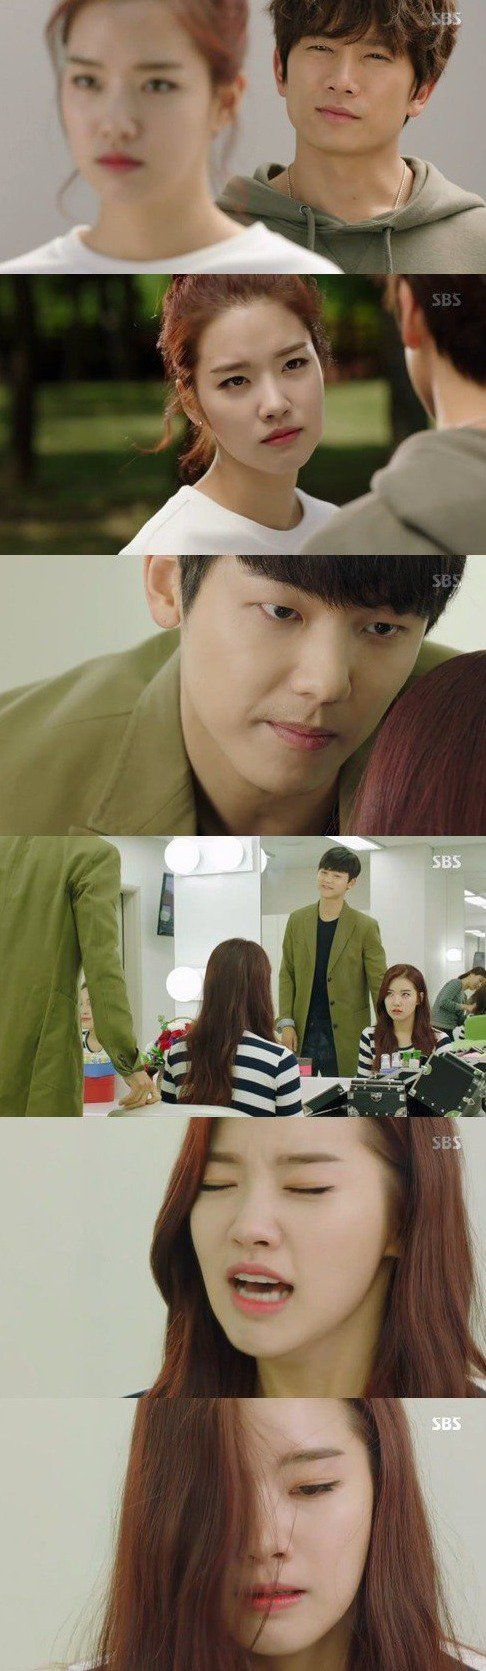 Added episode 10 captures for the Korean drama 'Entertainers'.